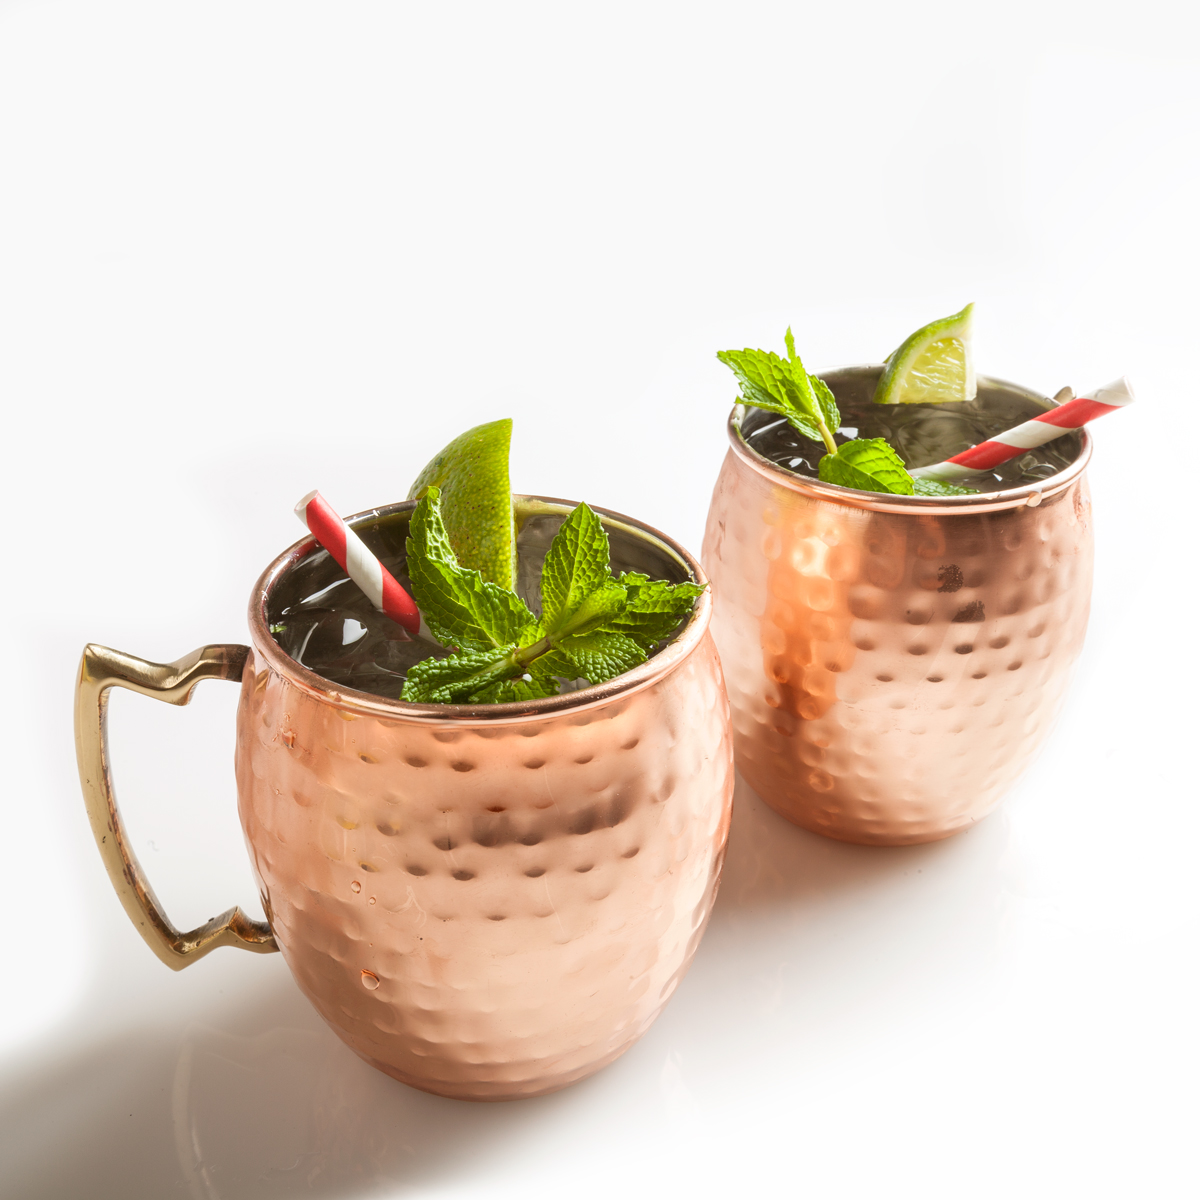 20 Oz. Hammered Copper-Plated Moscow Mule Mug with Brass Handle